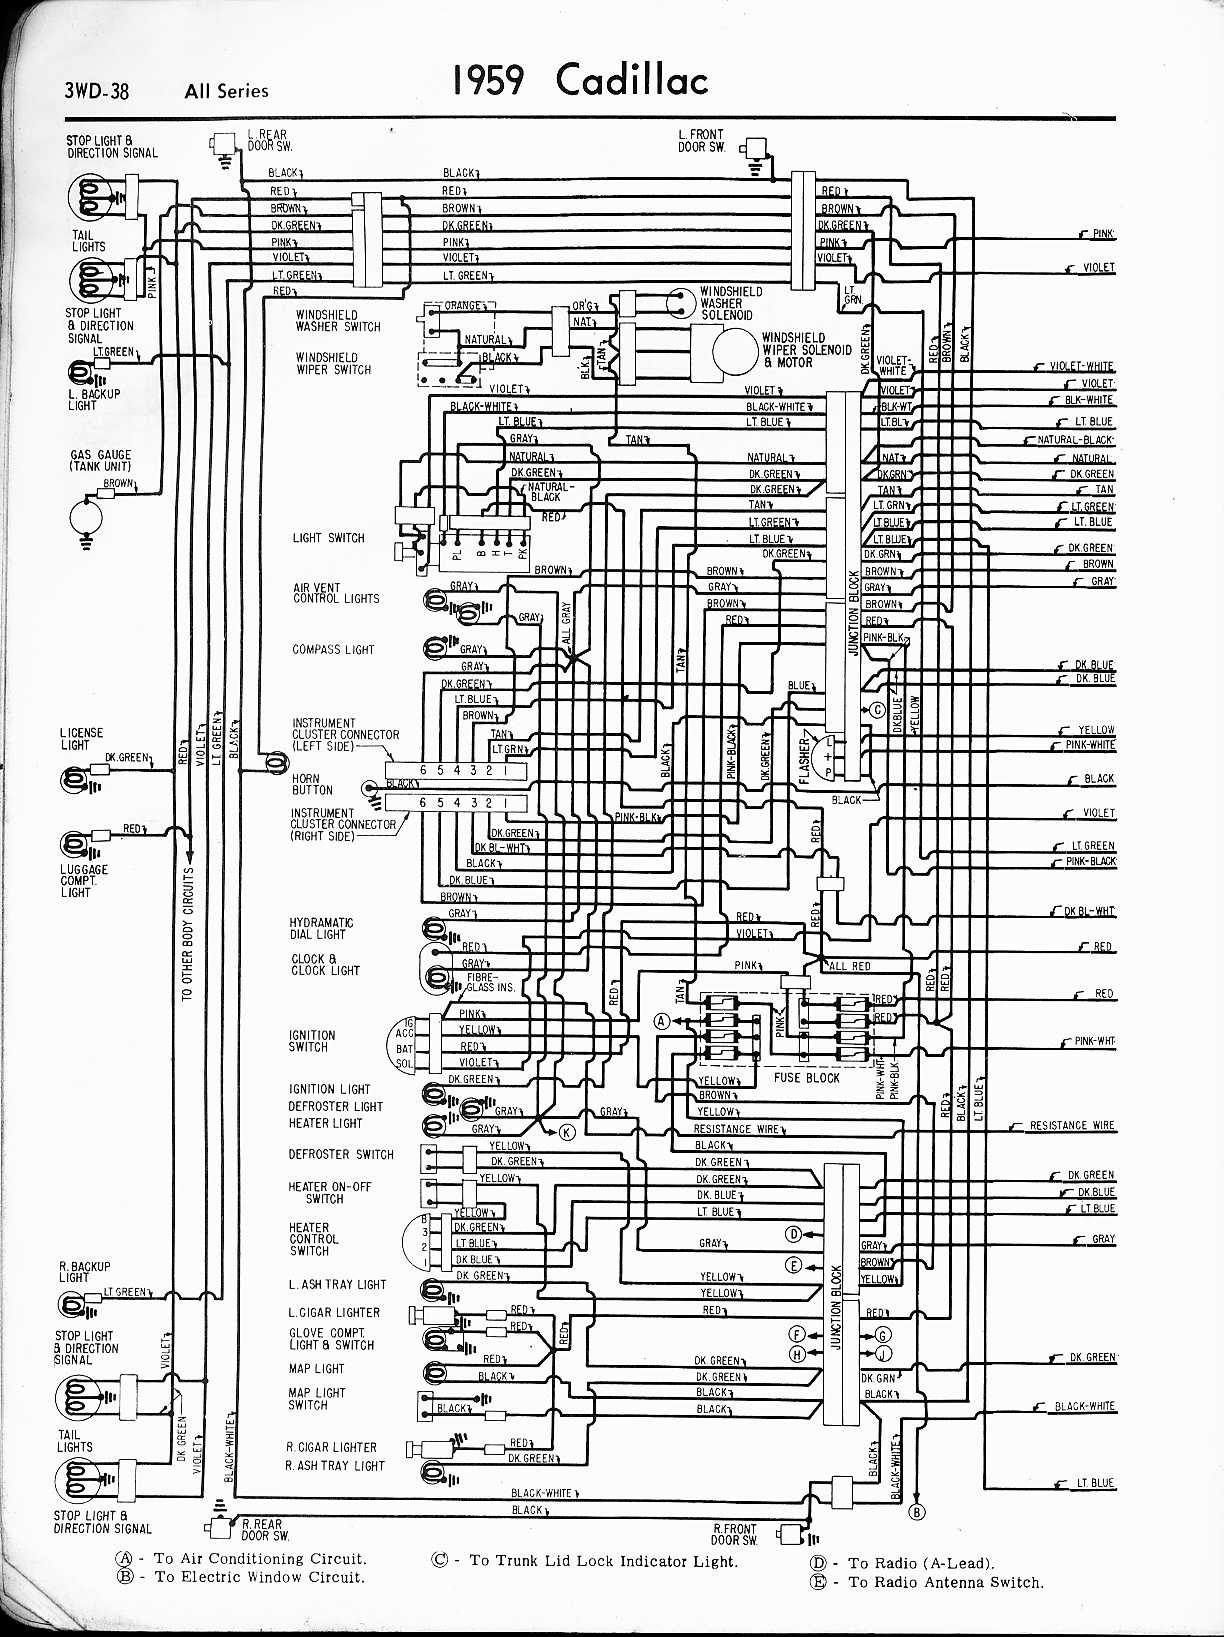 Diagram 1956 Cadillac Wiring Diagram Full Version Hd Quality Wiring Diagram Diagramberkq Camperlot It